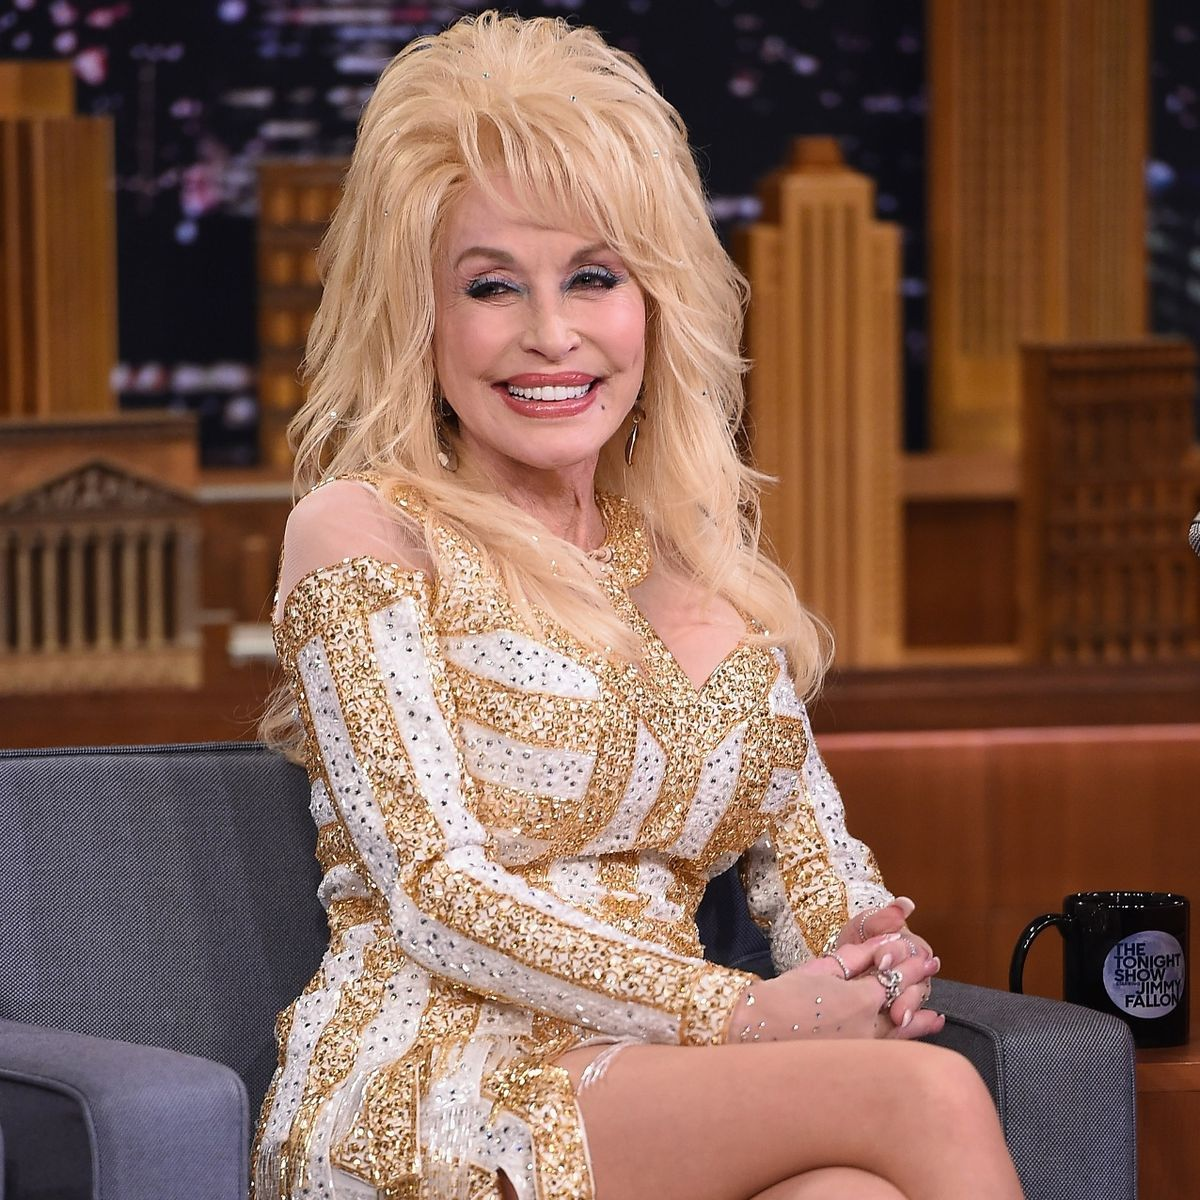 1 167 Sparkling Facts About Dolly Parton, The Rhinestone Queen of Tennessee